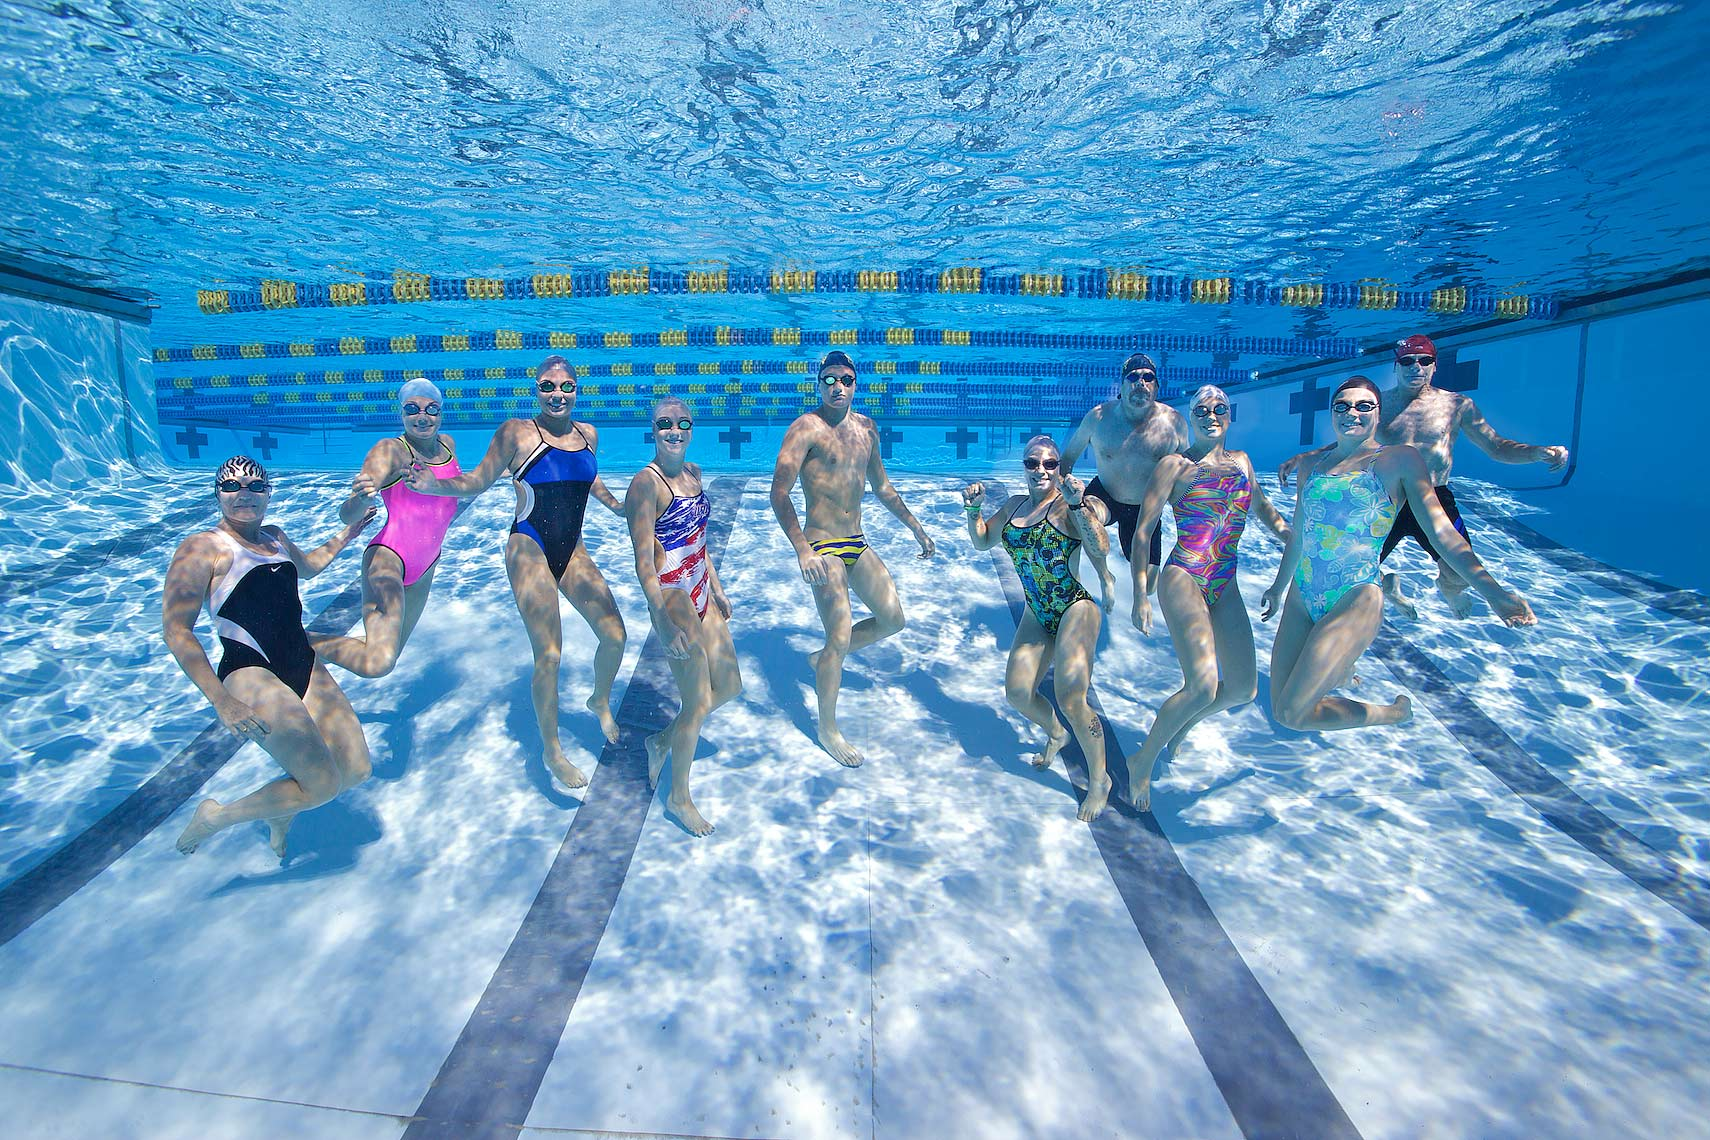 swimmers, people underwater_MG_1748_Robert_Holland_BFS.jpg